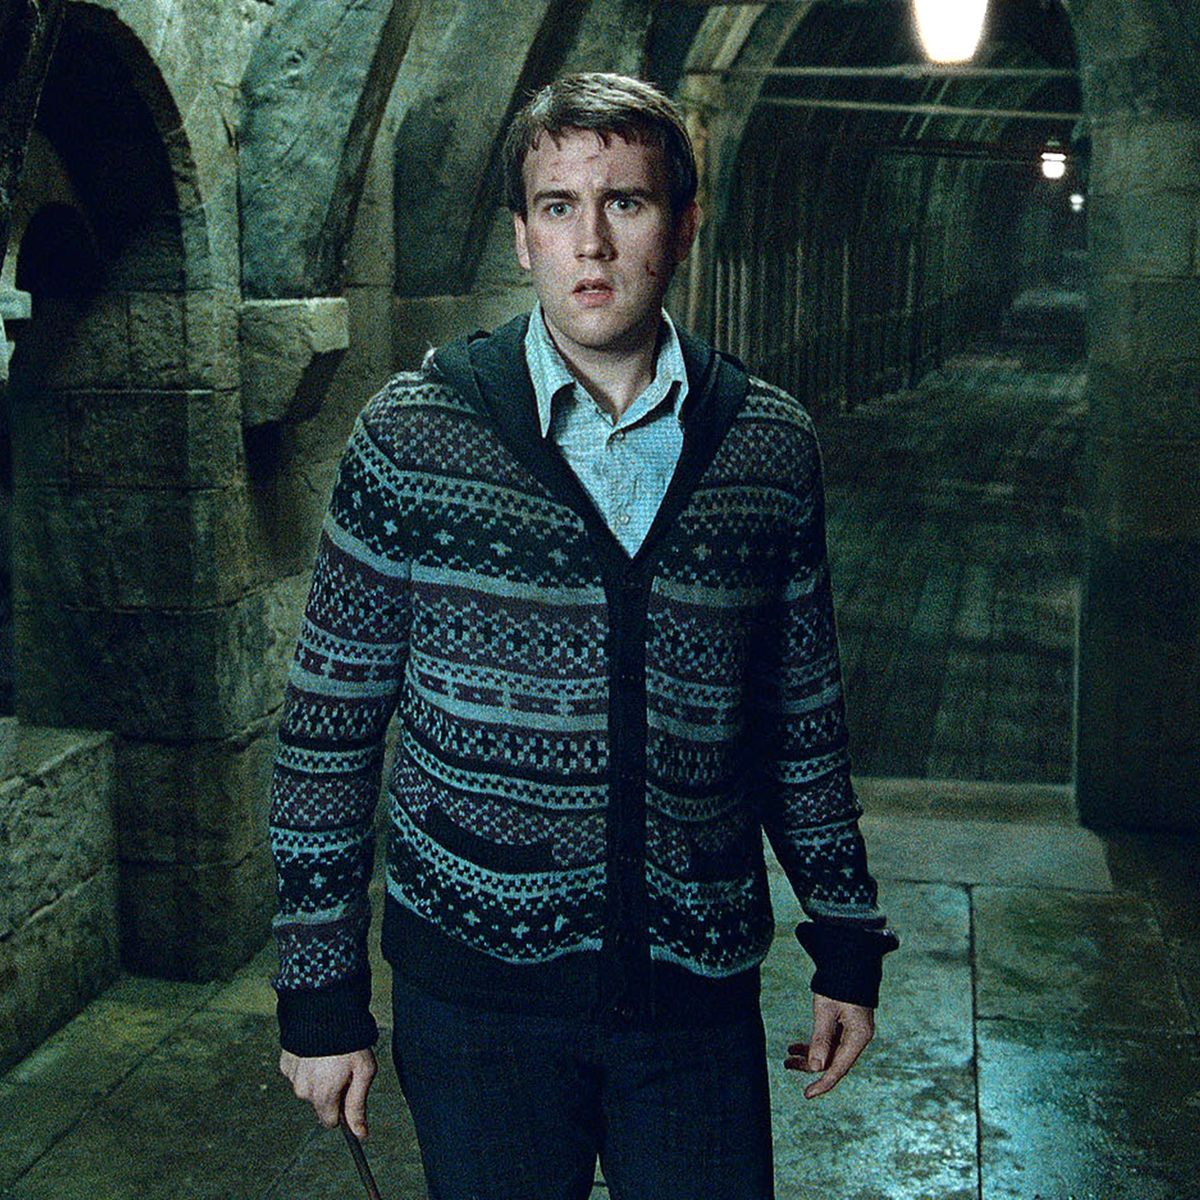 Neville Longbottom, Harry Potter and the Deathly Hallows, Pt. 2